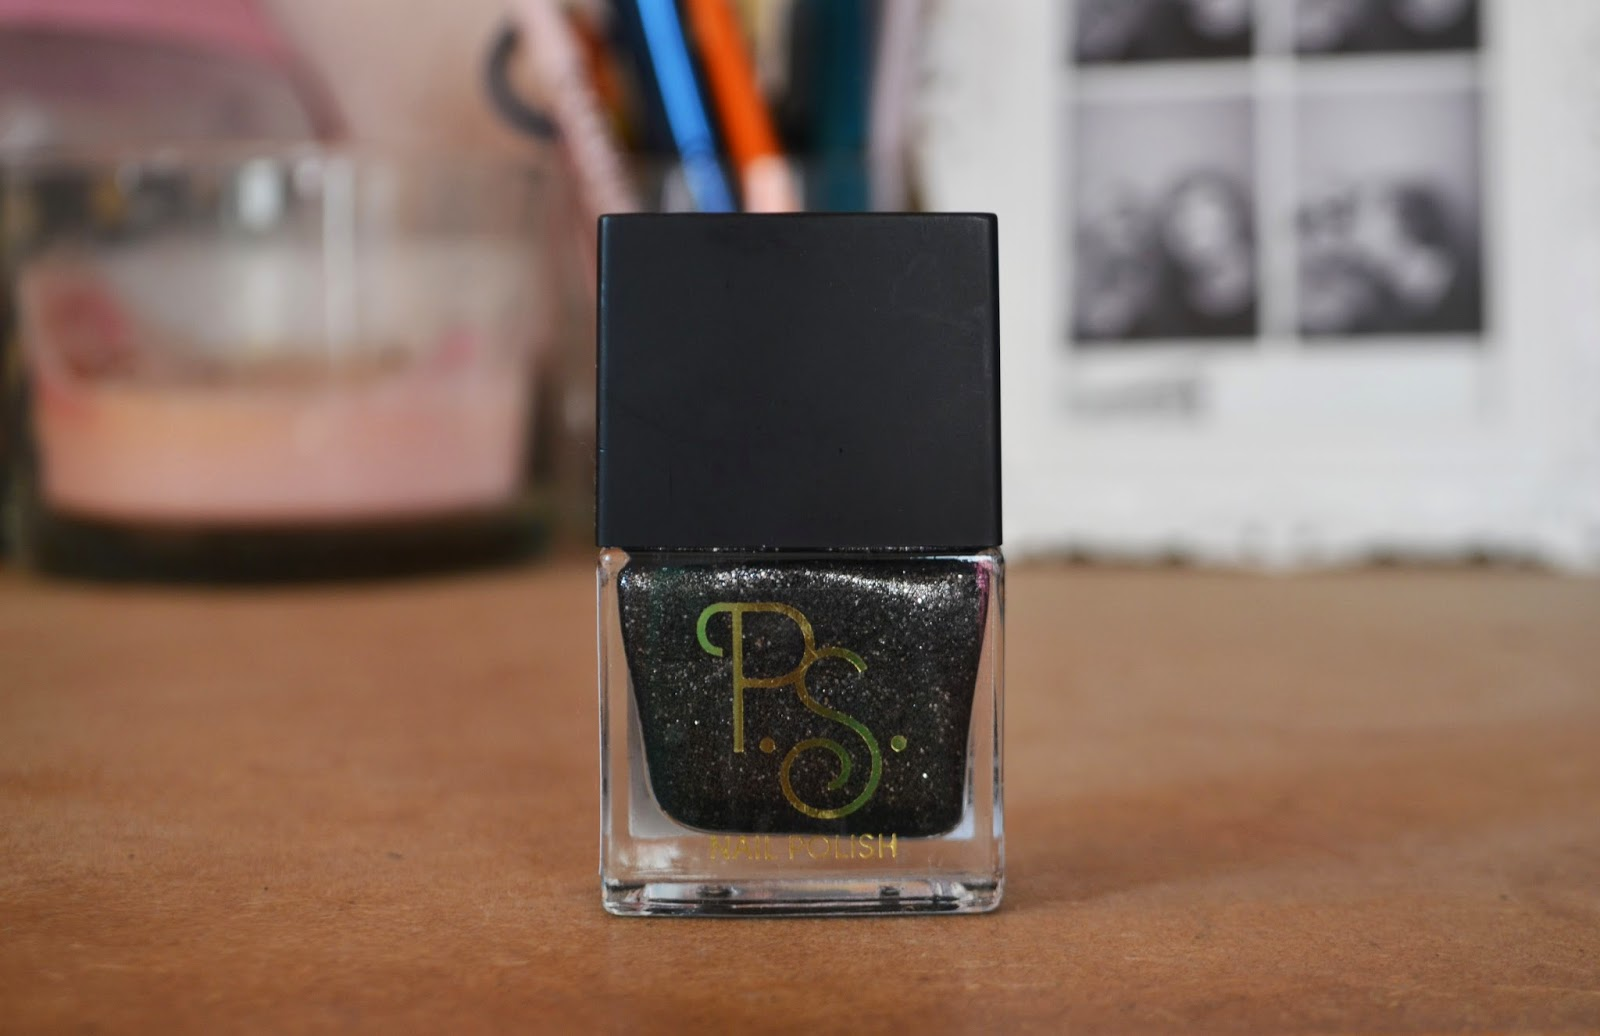 BOTTLE OF BLACK GLITTER PRIMARK NAIL VARNISH